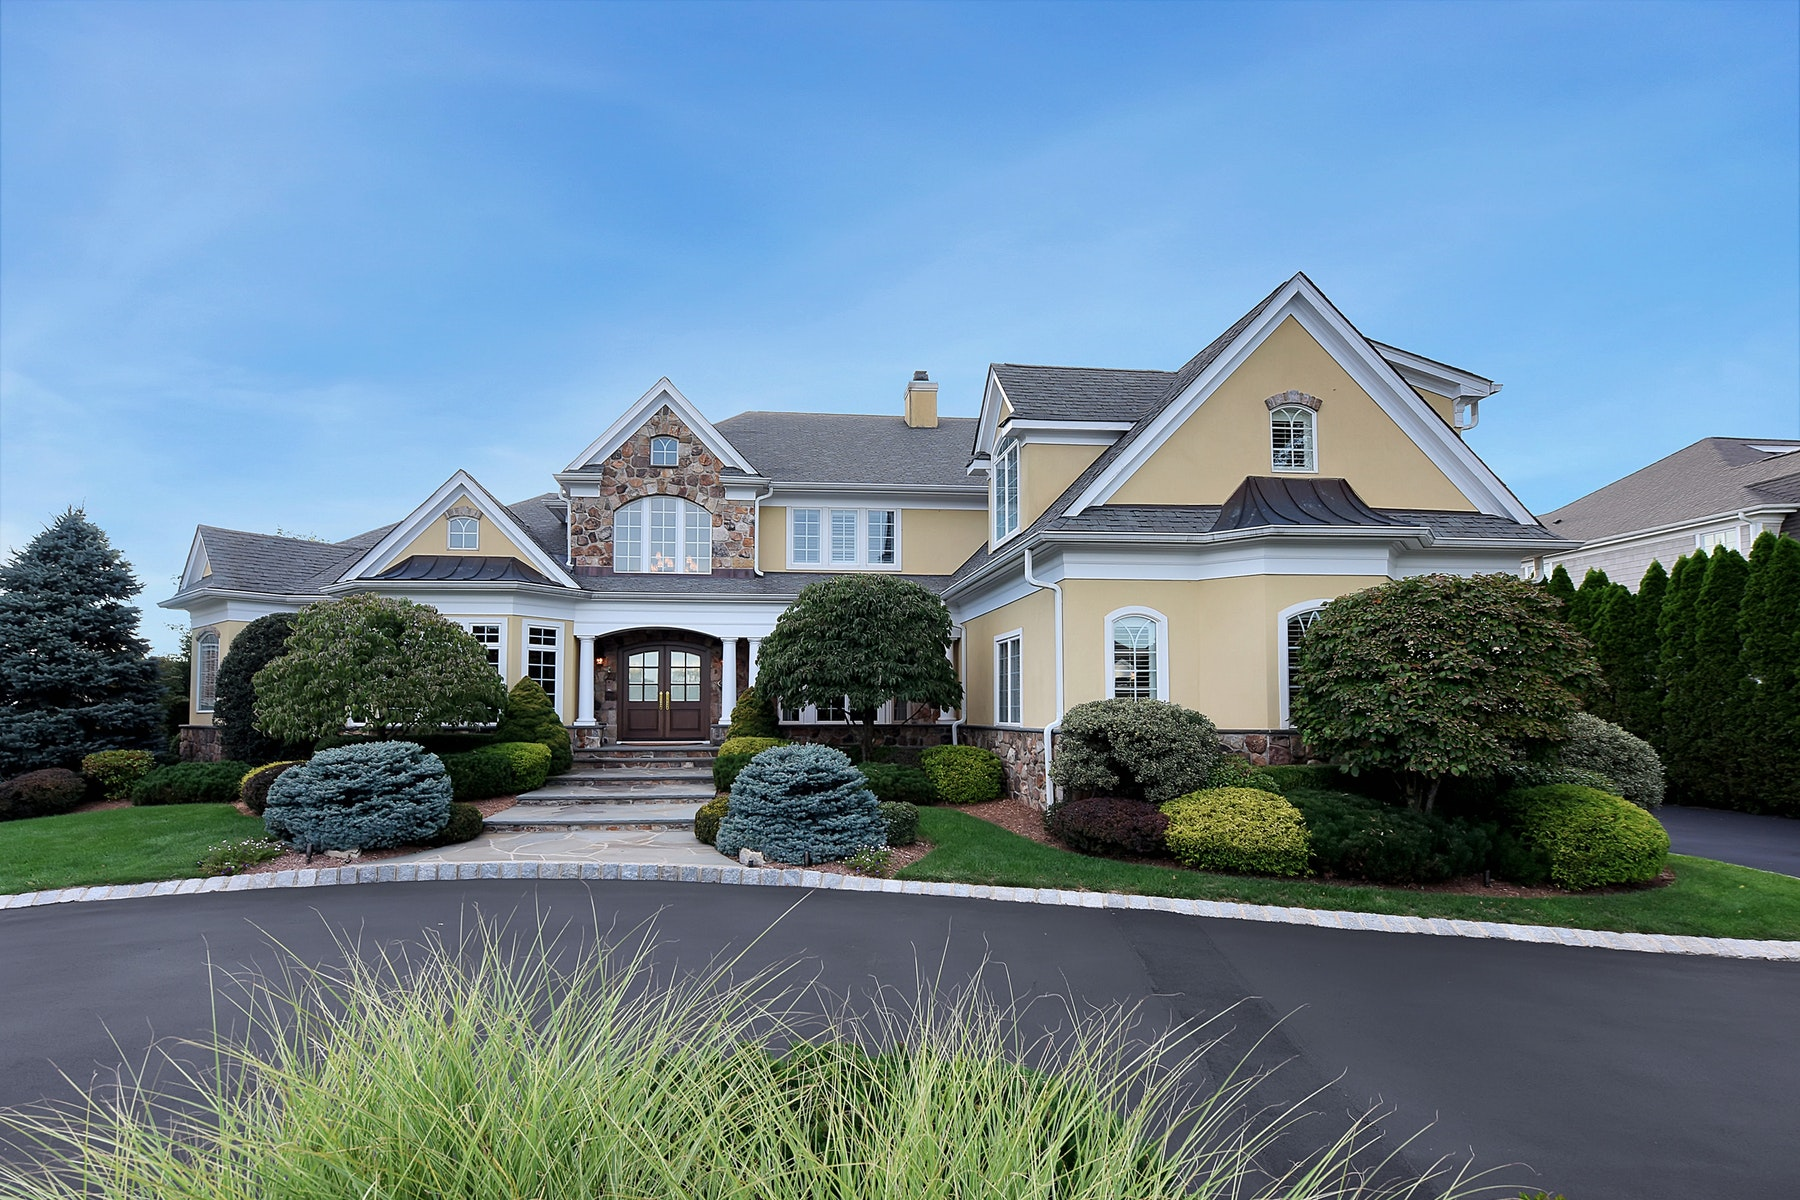 Single Family Homes for Sale at Unparalleled Location 689 Charnwood Drive Wyckoff, New Jersey 07481 United States